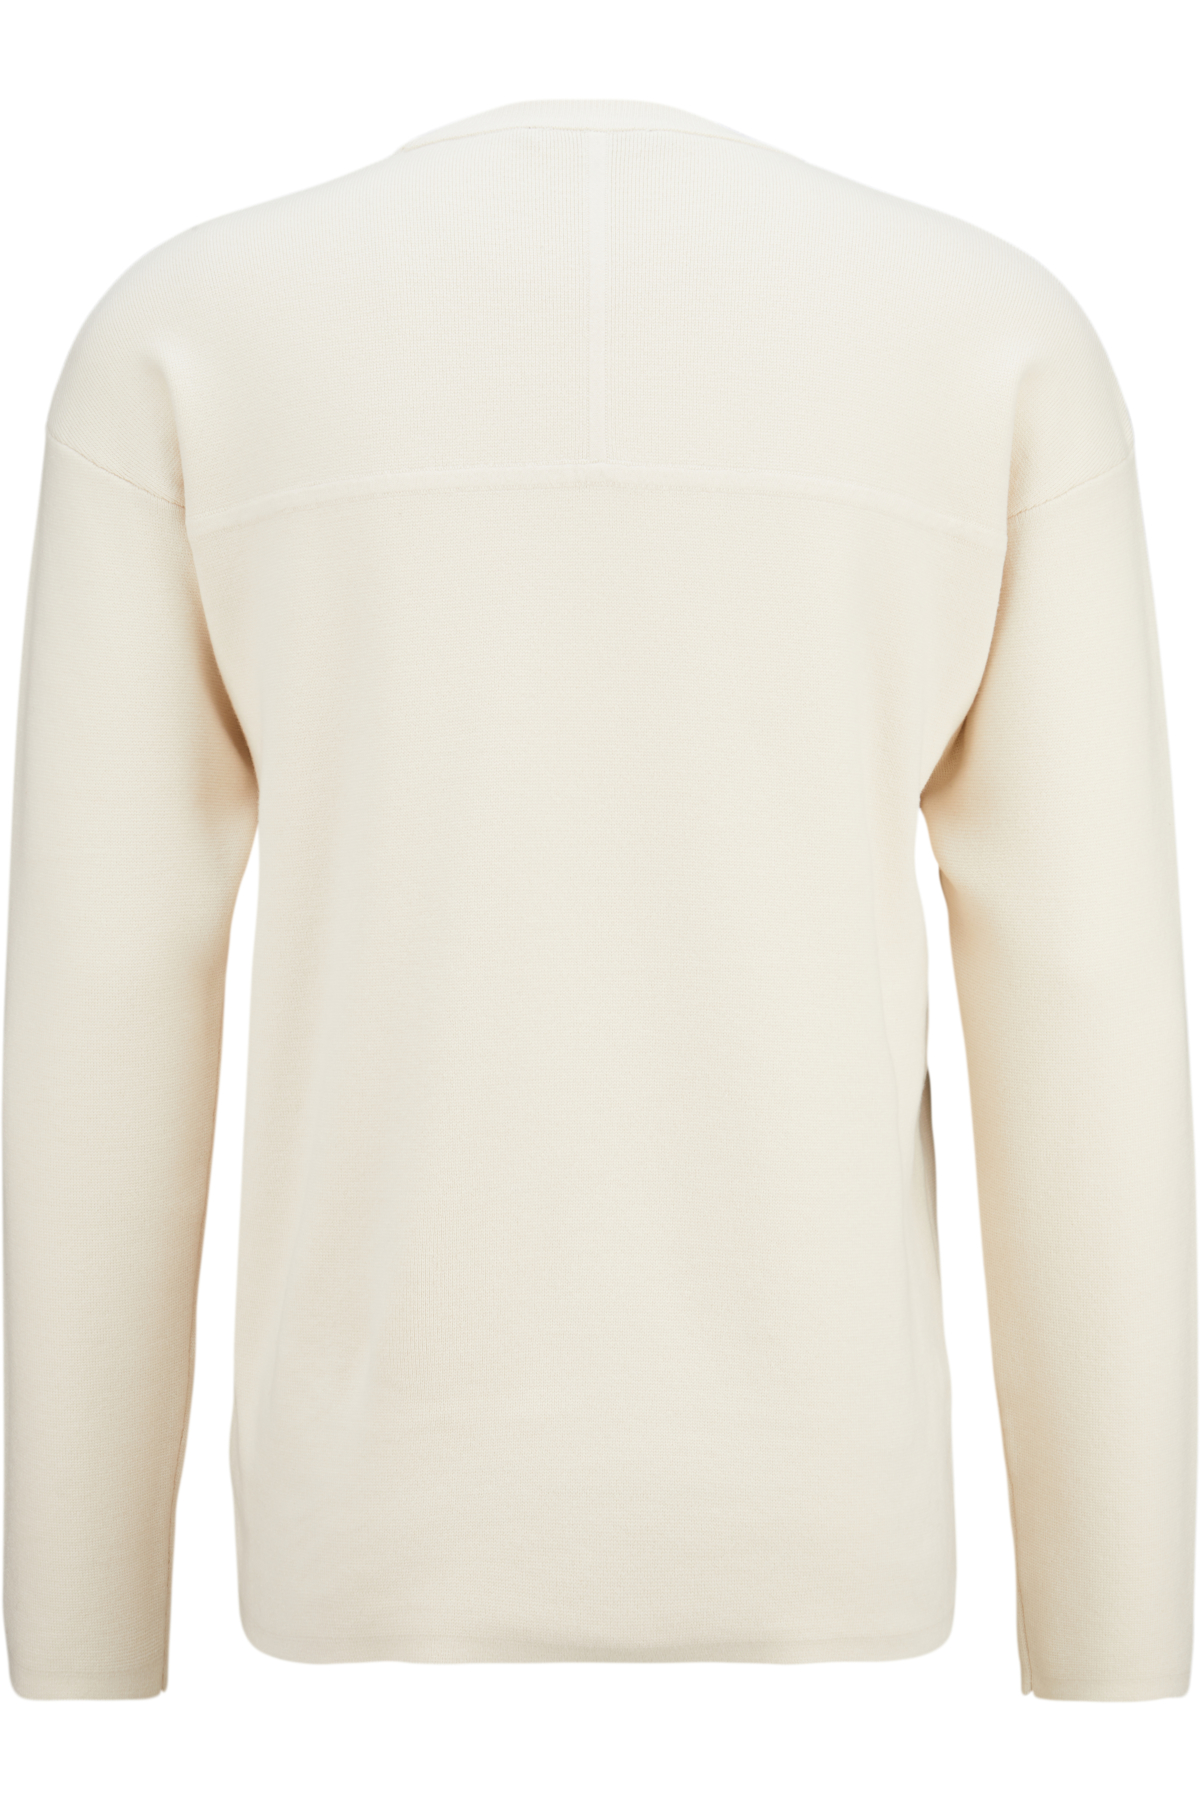 DRYKORN Pullover in Offwhite 435808